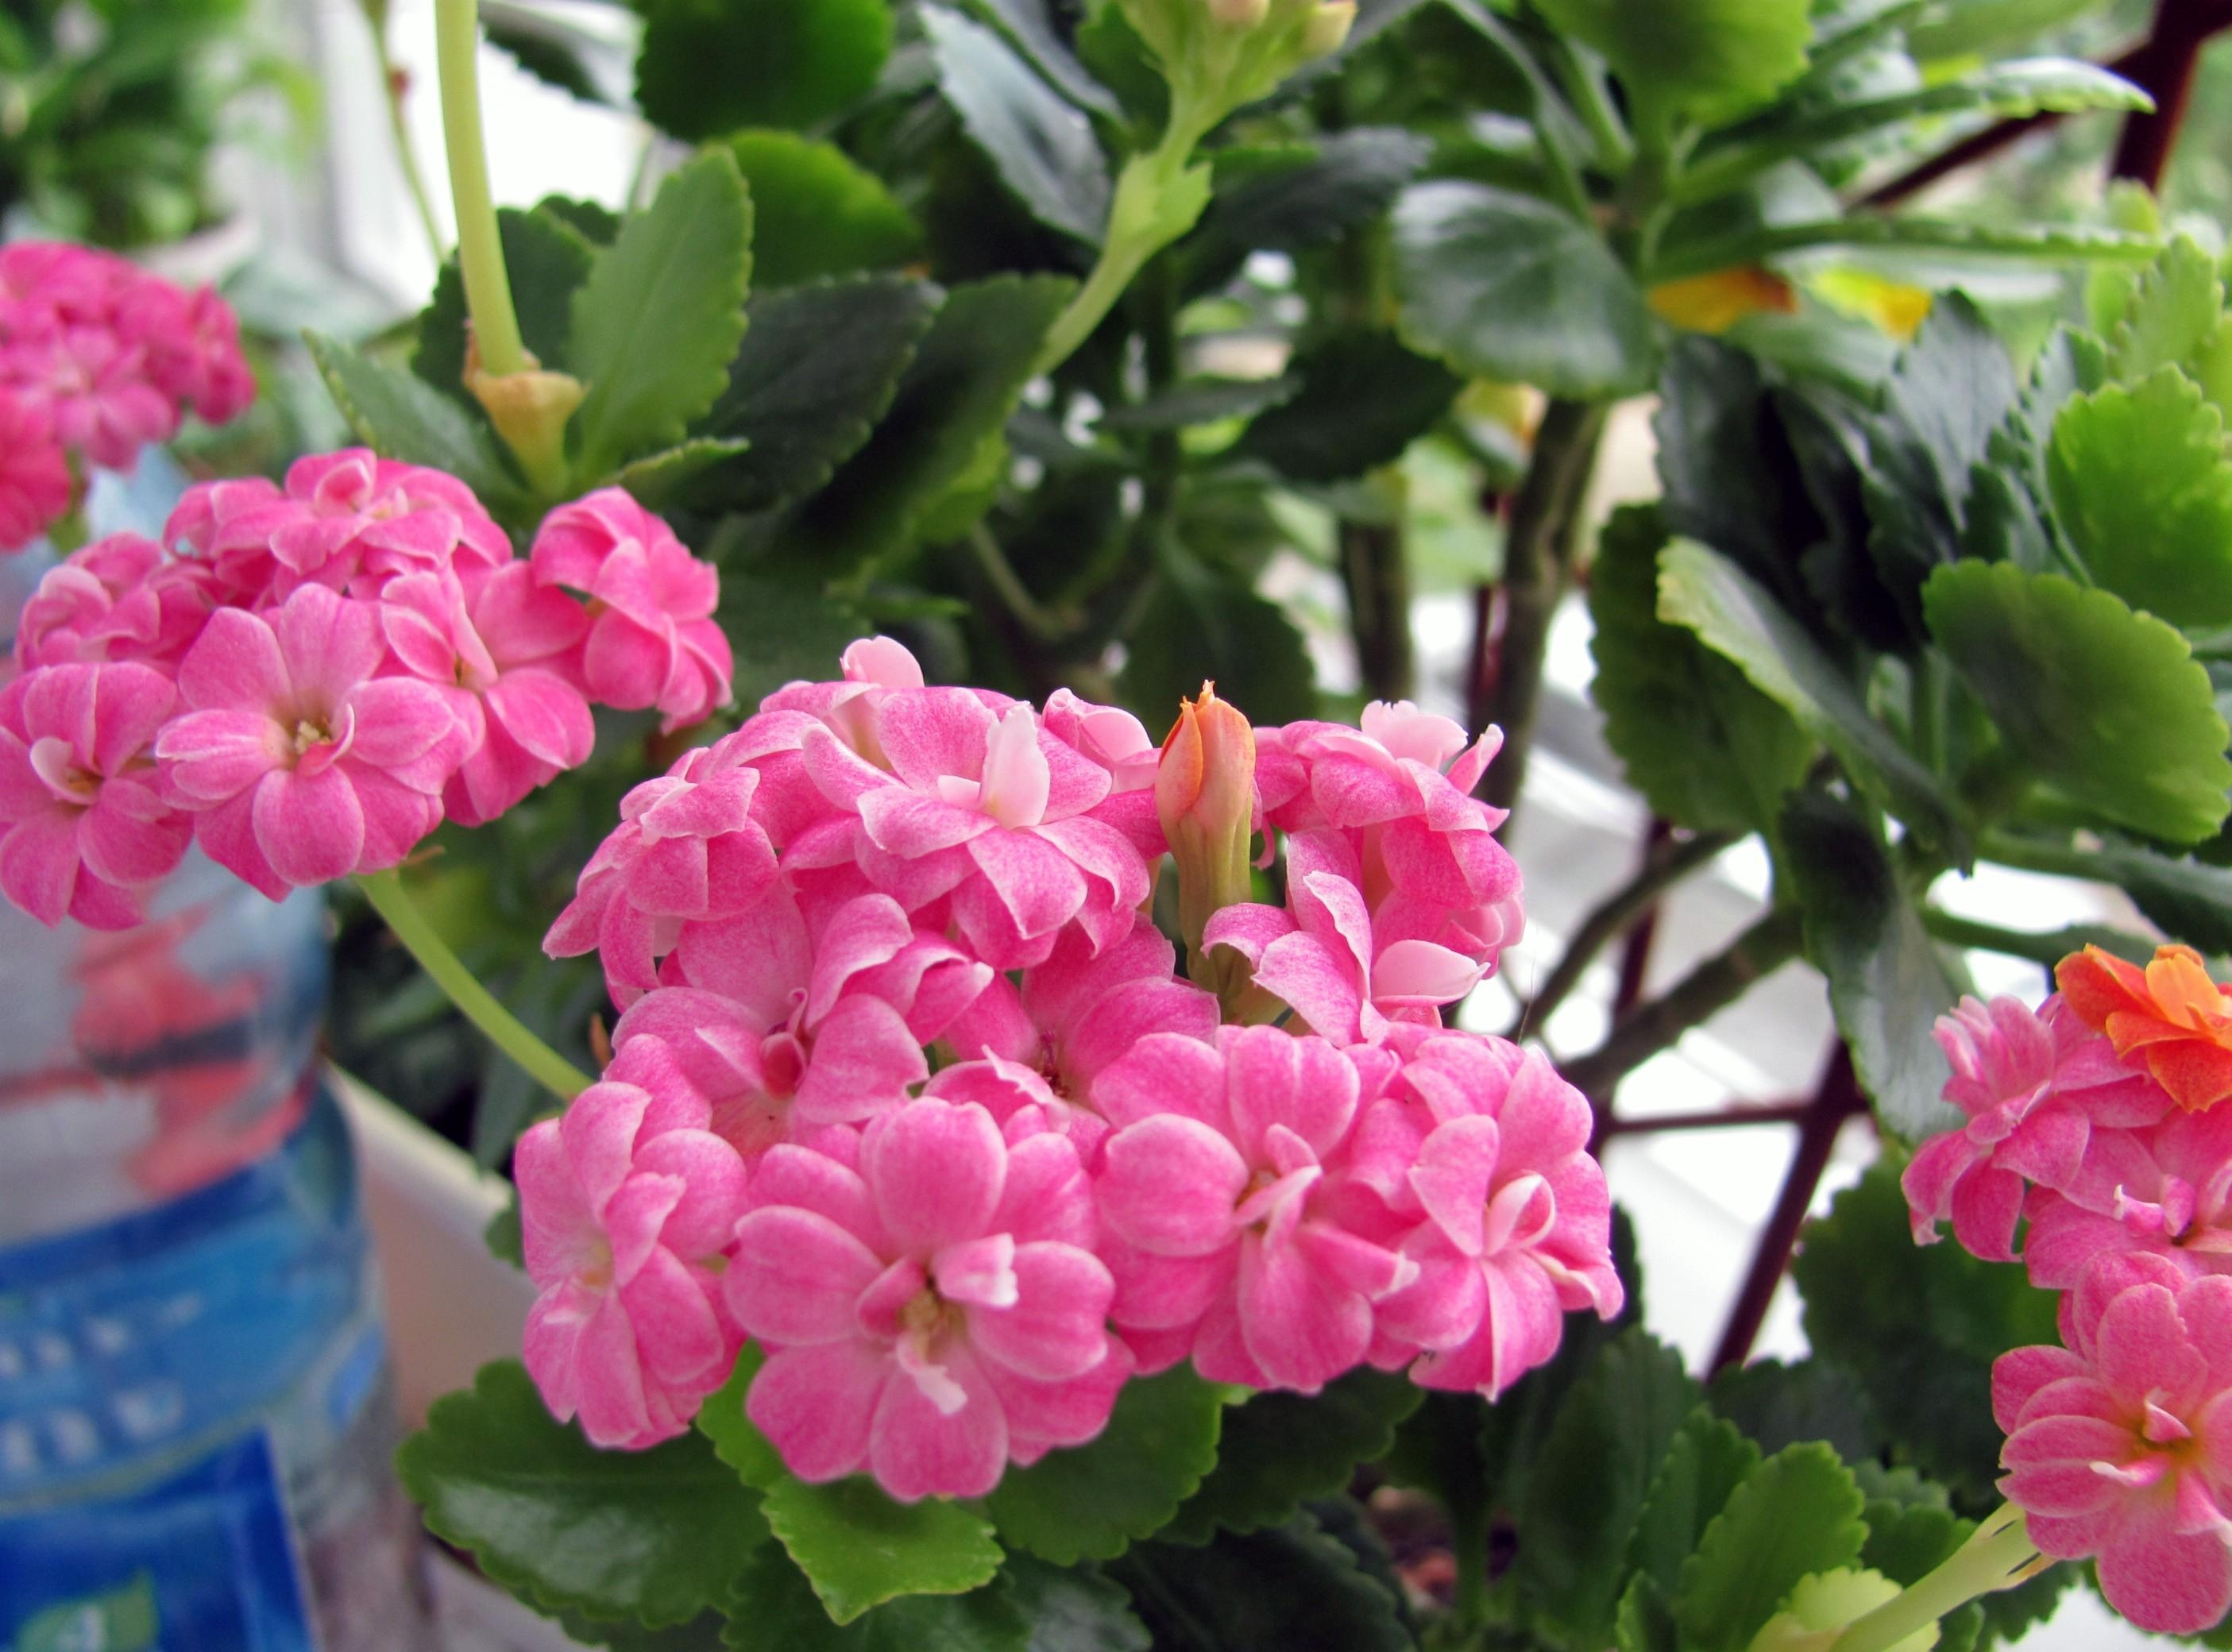 146071 download wallpaper Flowers, Kalanchoe, Flower, Room, Greens, Pot screensavers and pictures for free